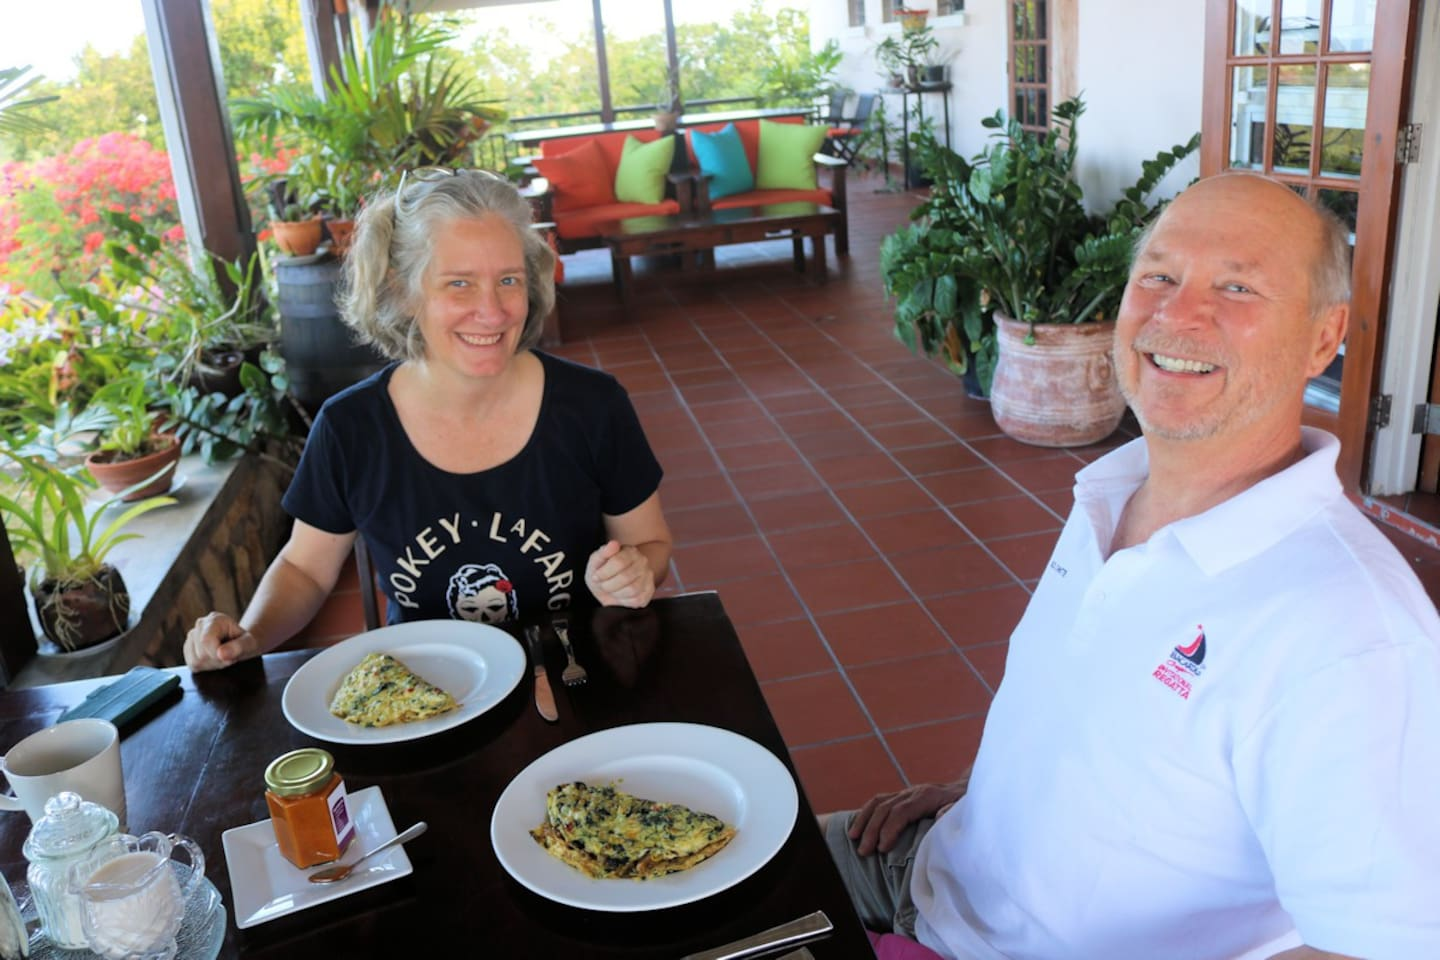 John and his better half took advantage of our breakfast selecting homemade omelets flavored with Nicole's Tomato Chutney.